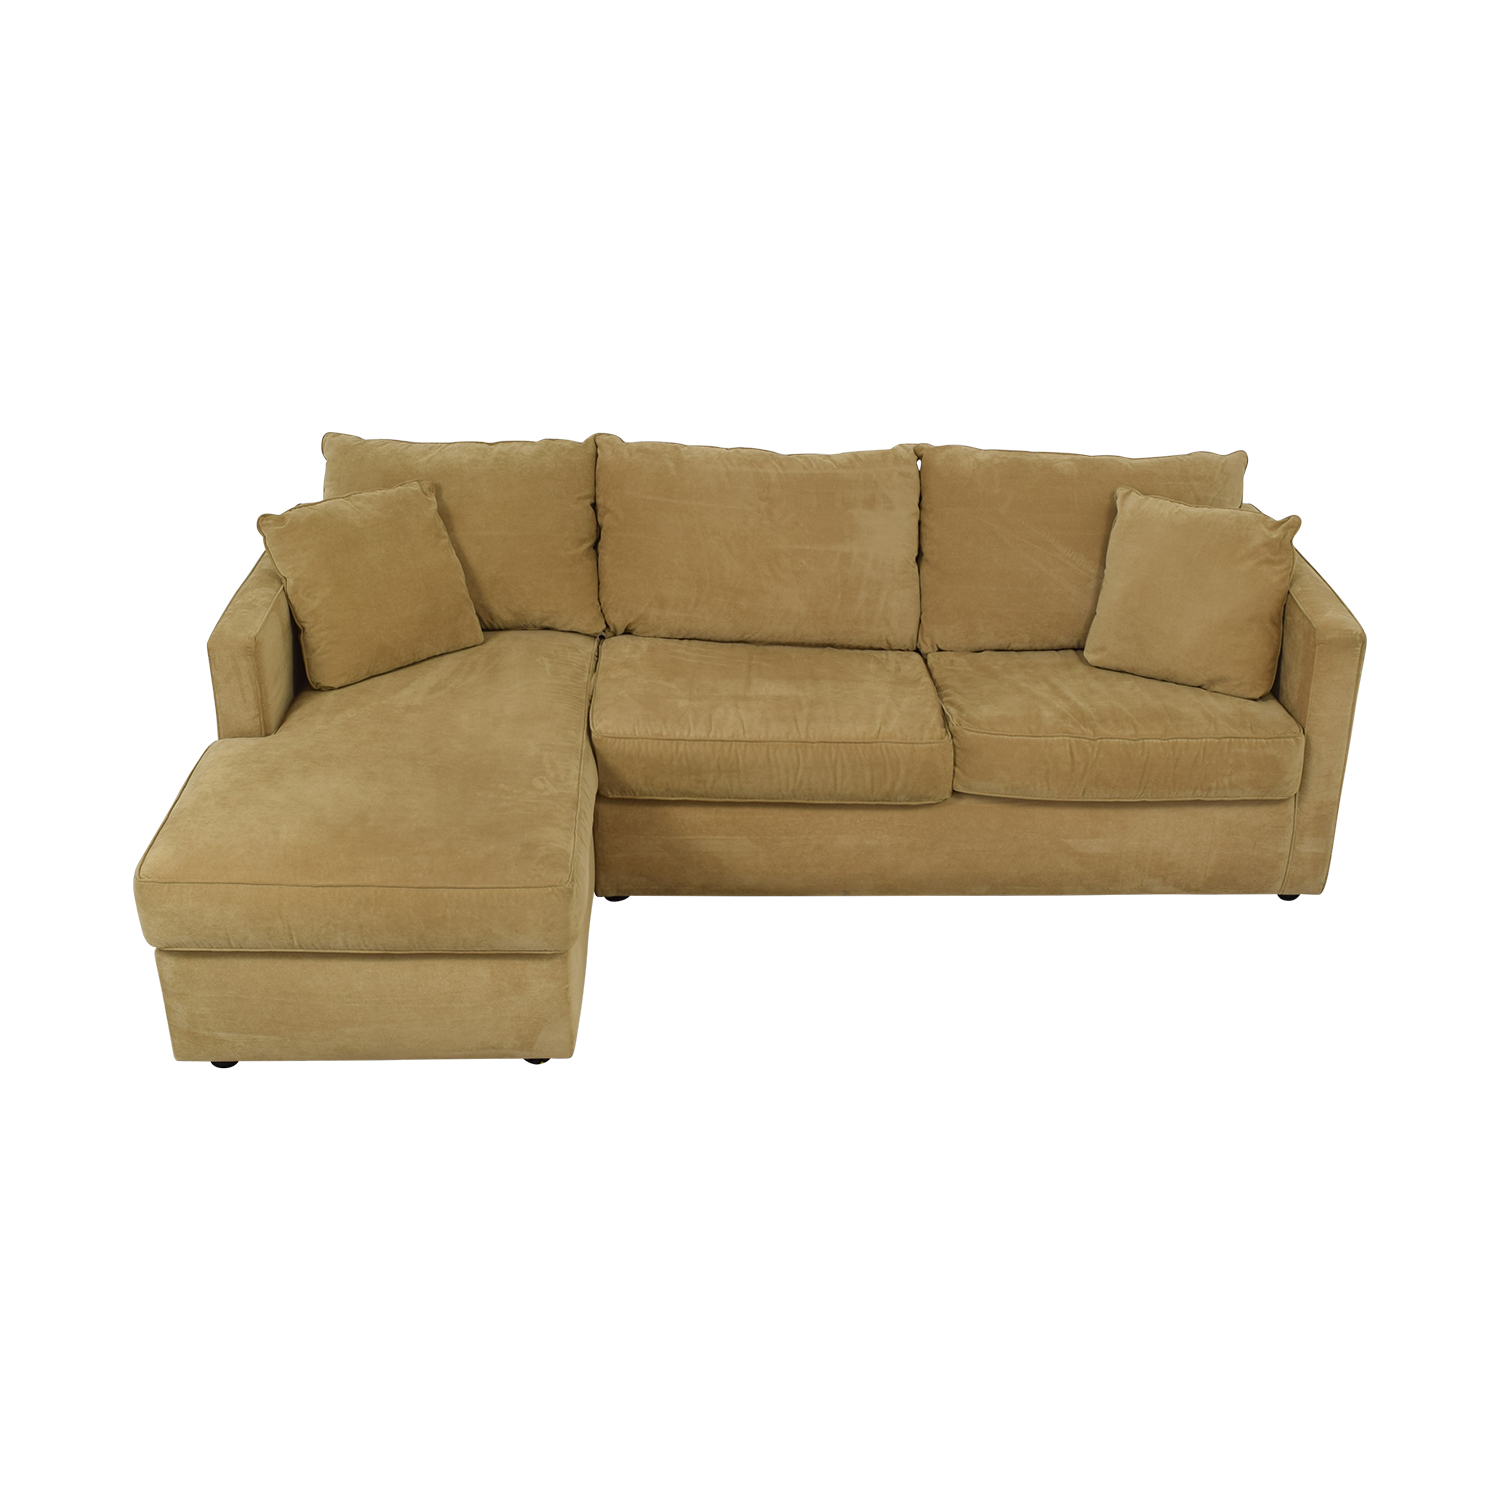 buy Klaussner Chaise Sectional Sleeper Sofa Klaussner